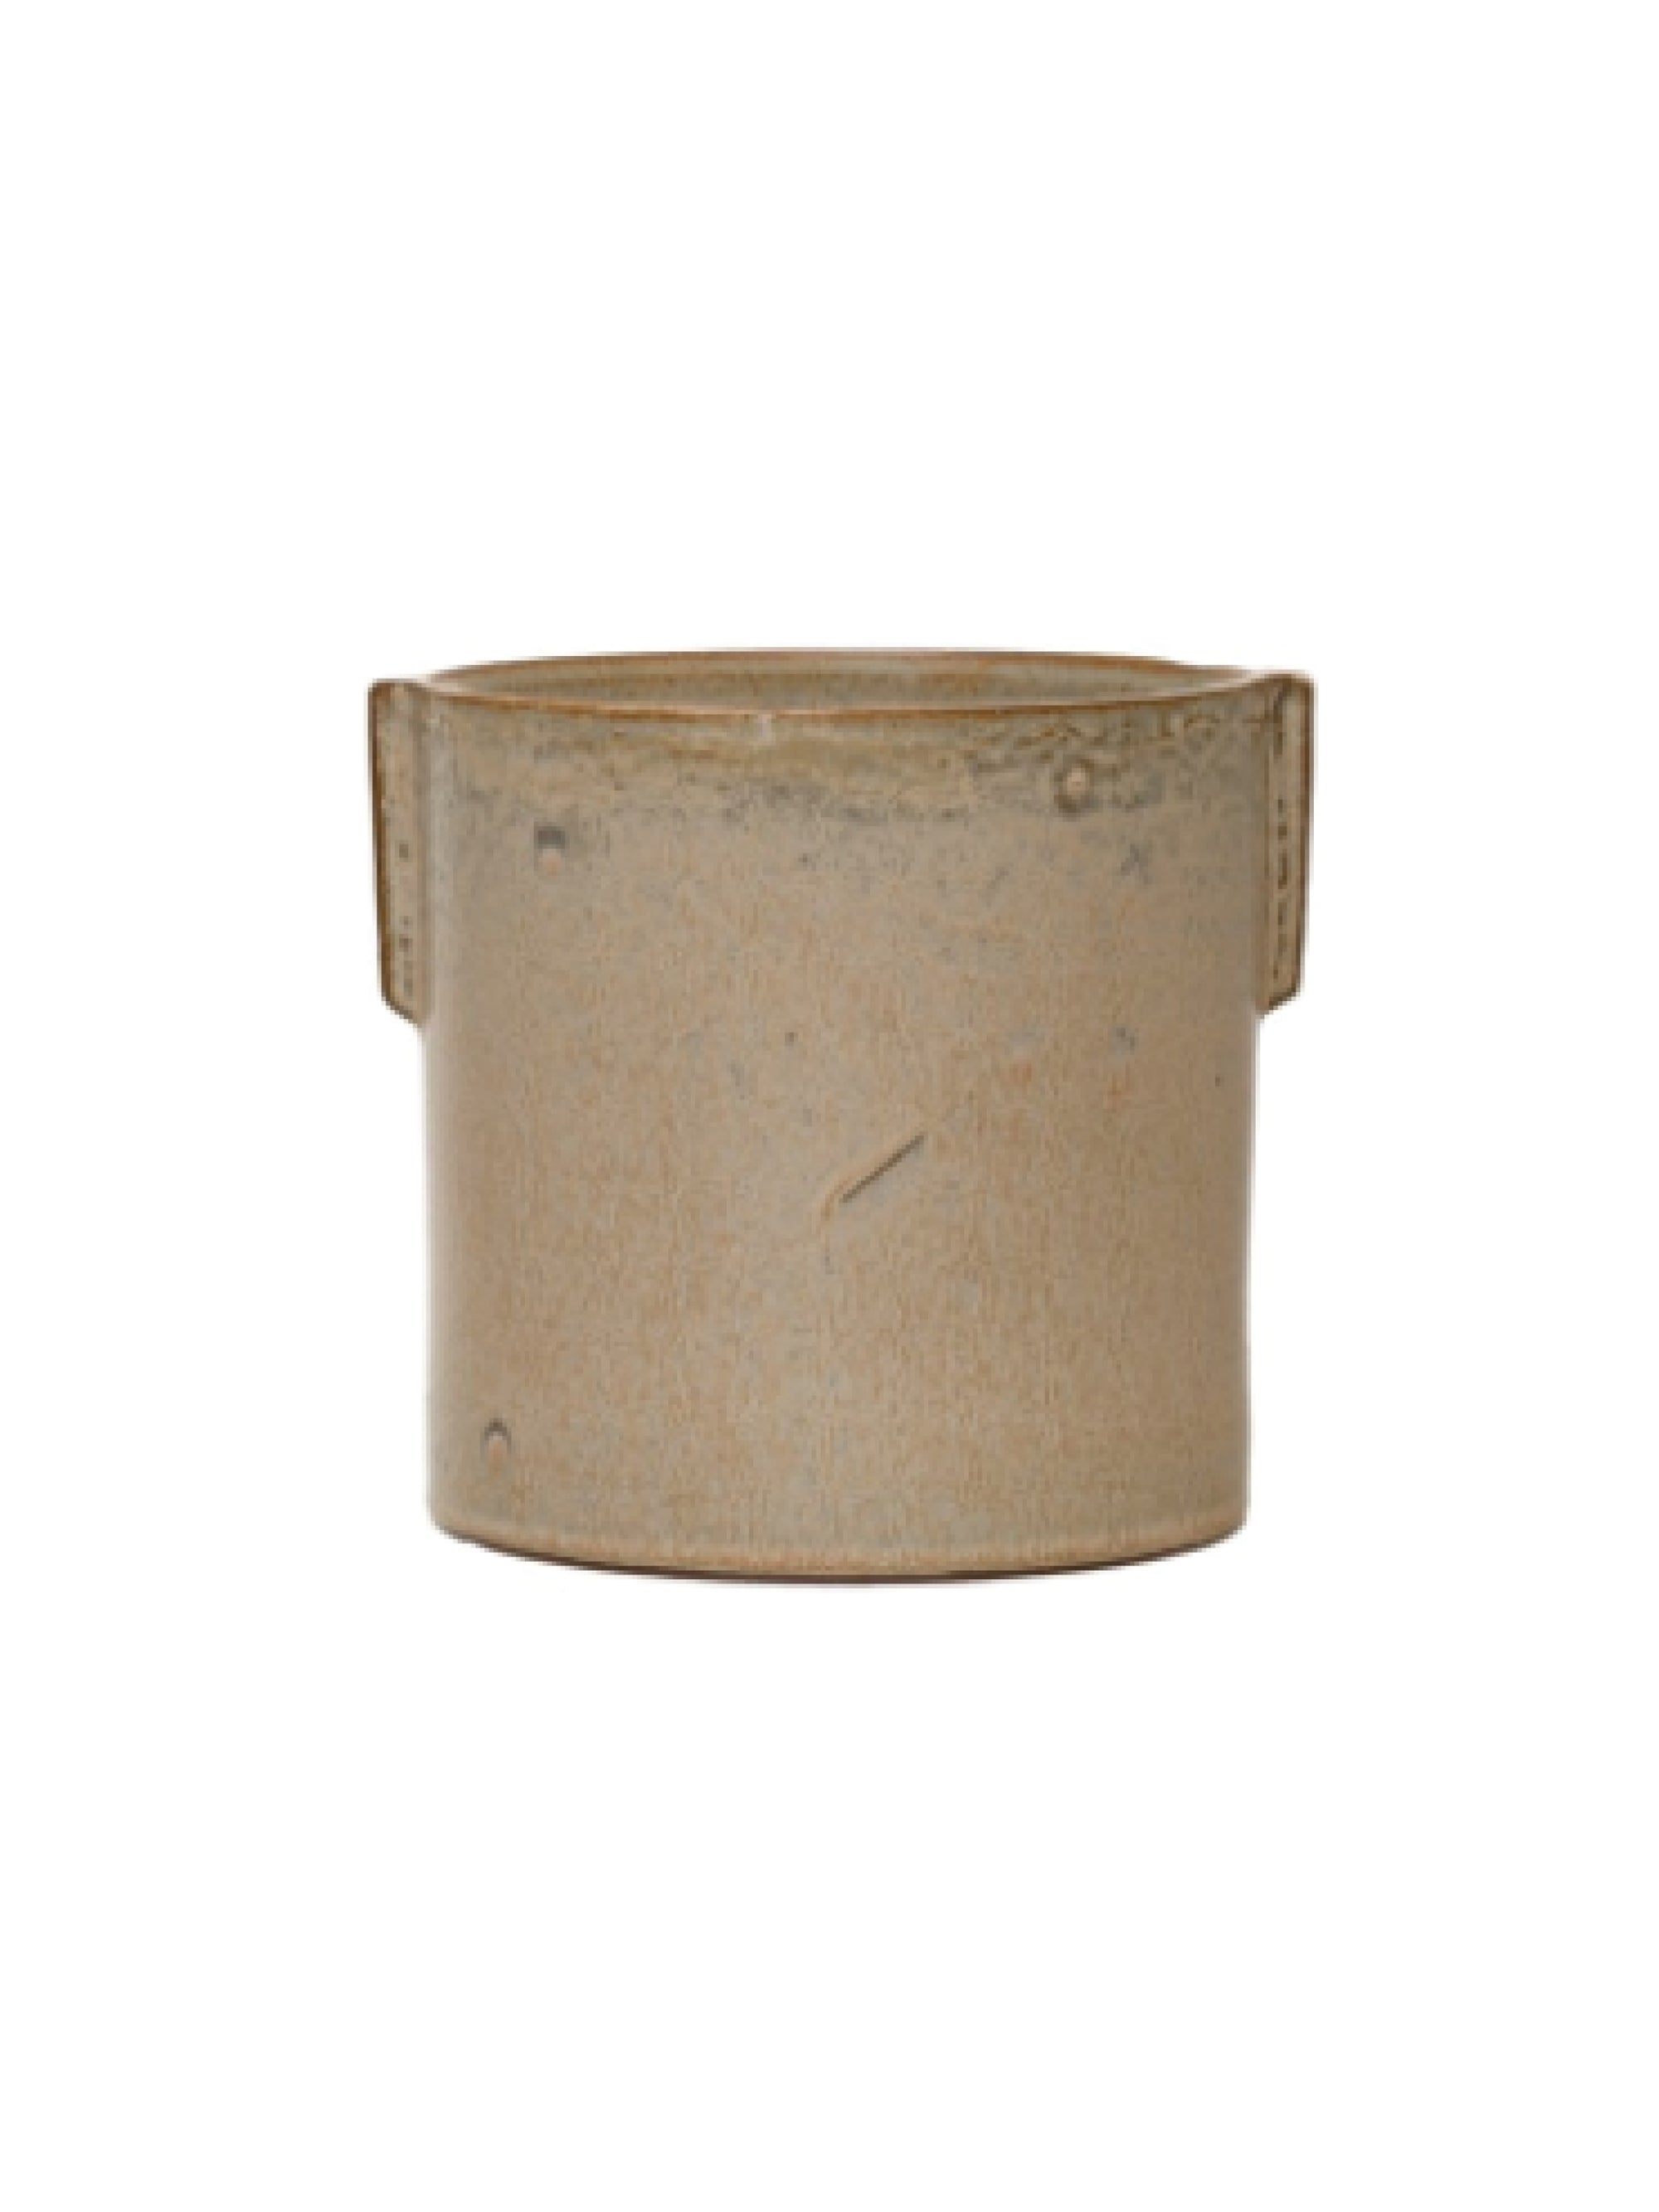 Stoneware Flower Pot w/ Reactive Glaze